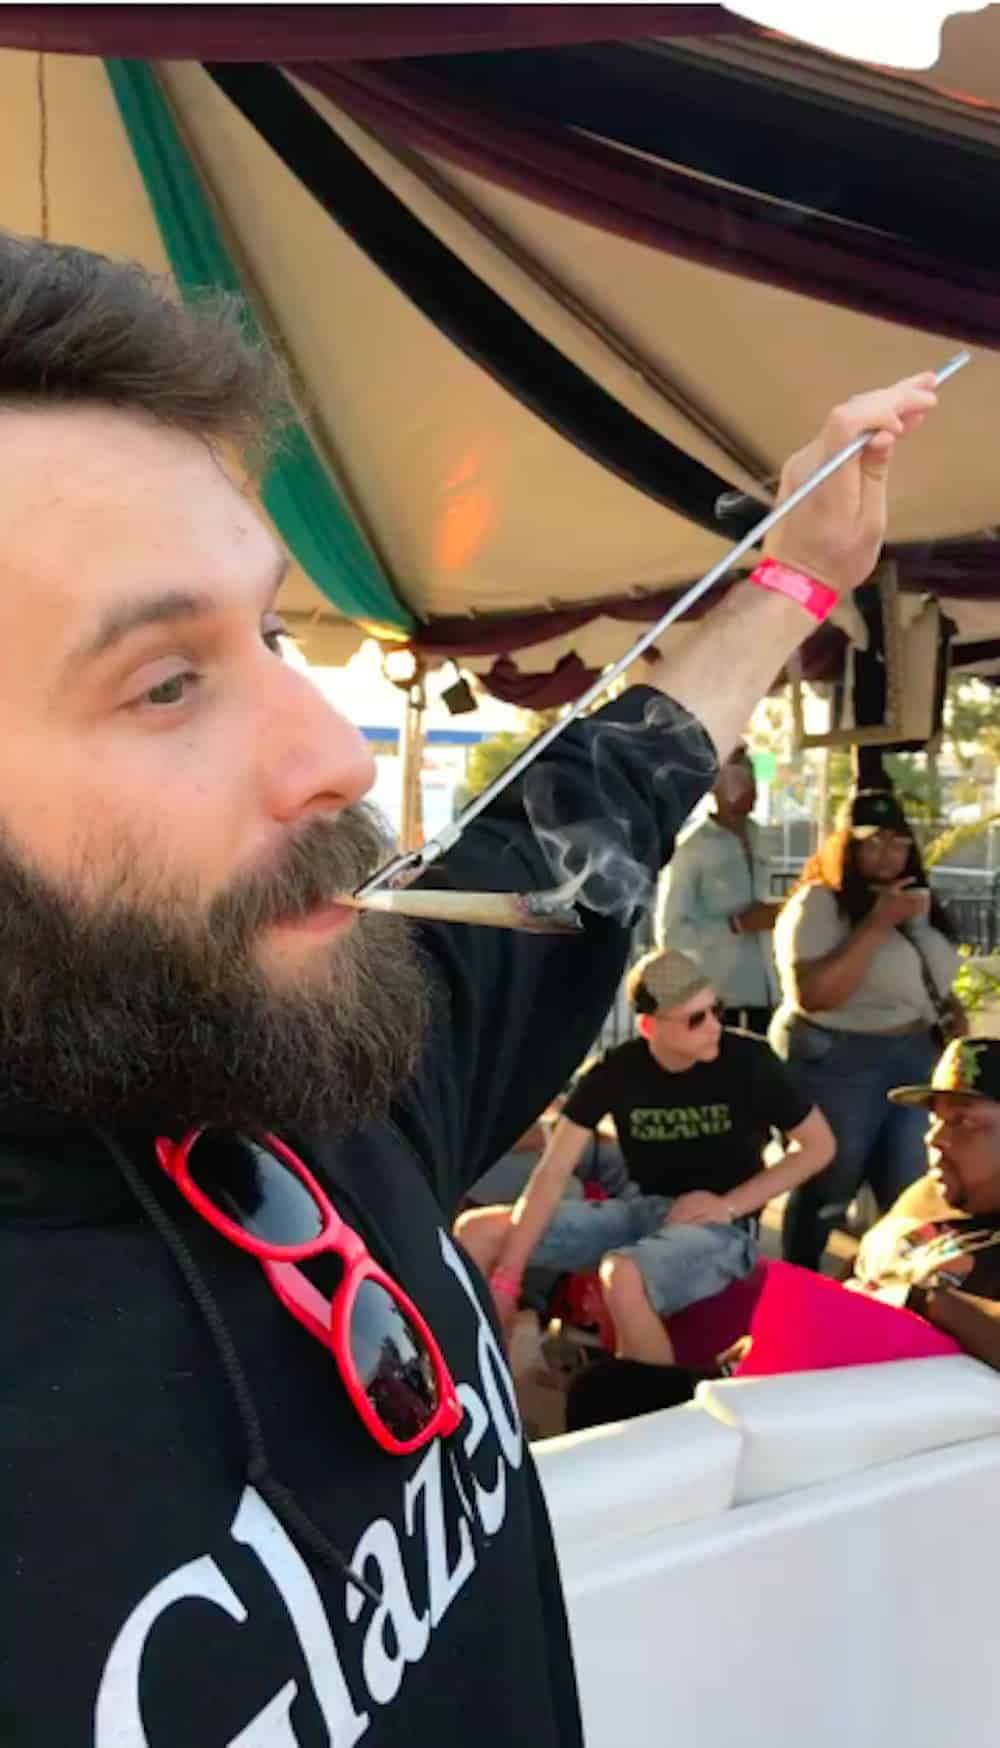 The 15 Dankest I Saw At The Cannabis Cup